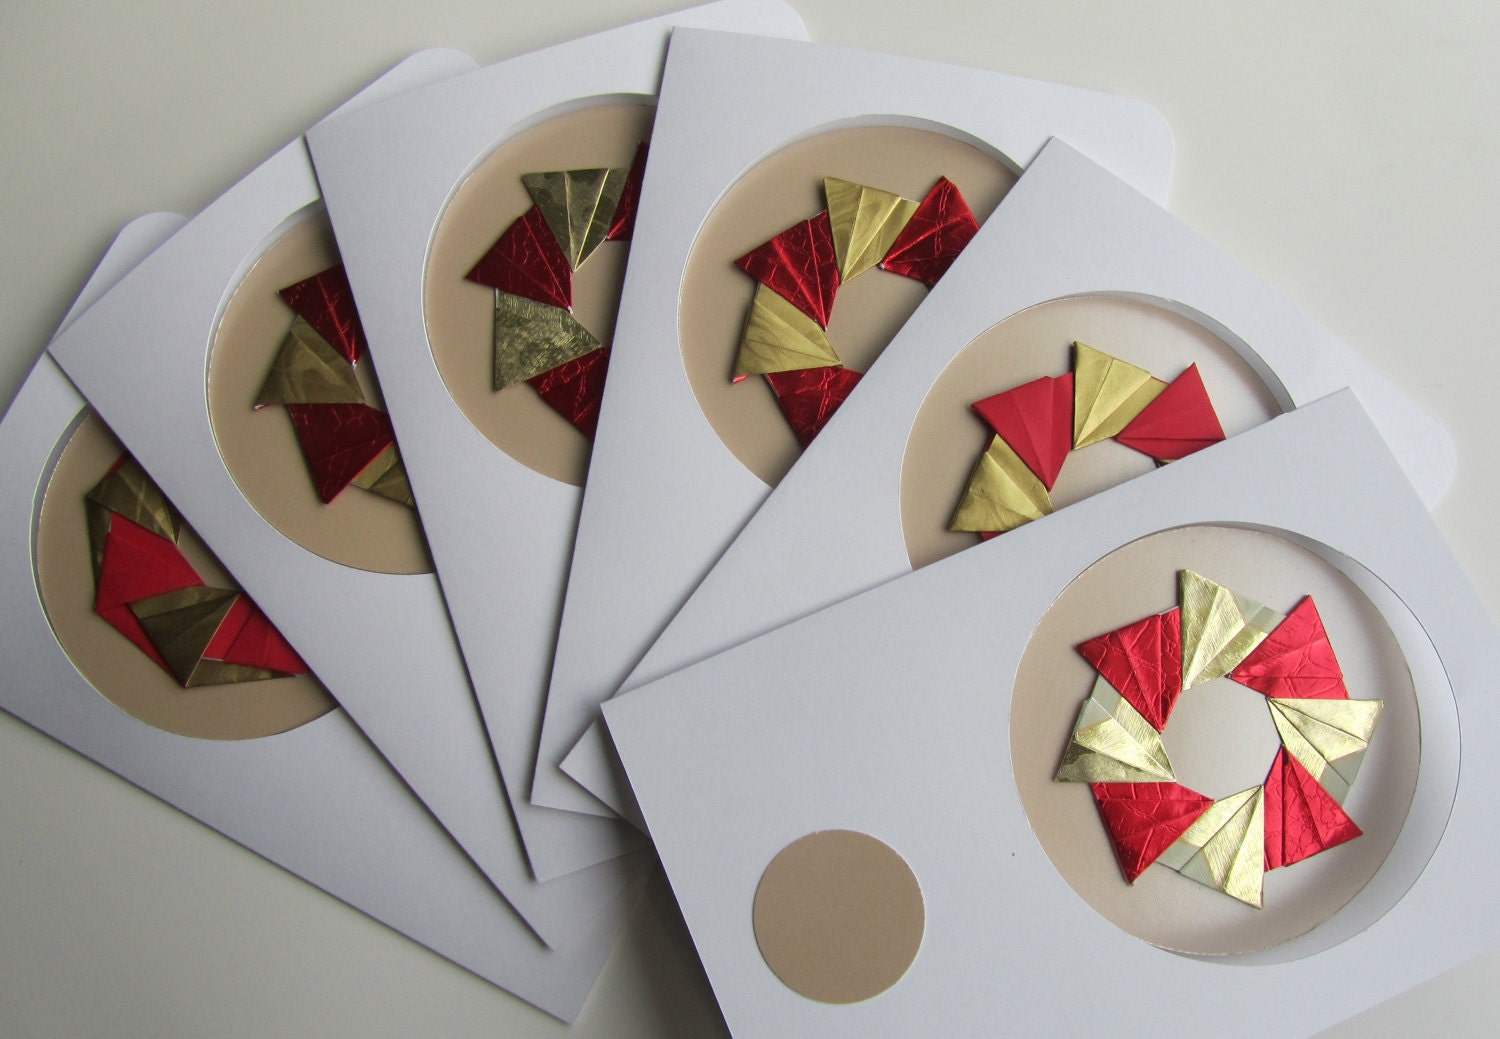 6 CHRISTMAS Cards With Detachable ORIGAMI ORNAMENTS, Handmade as Stars in Shimmery Metallic Gold and Red on Textured Gold One Of A Kind